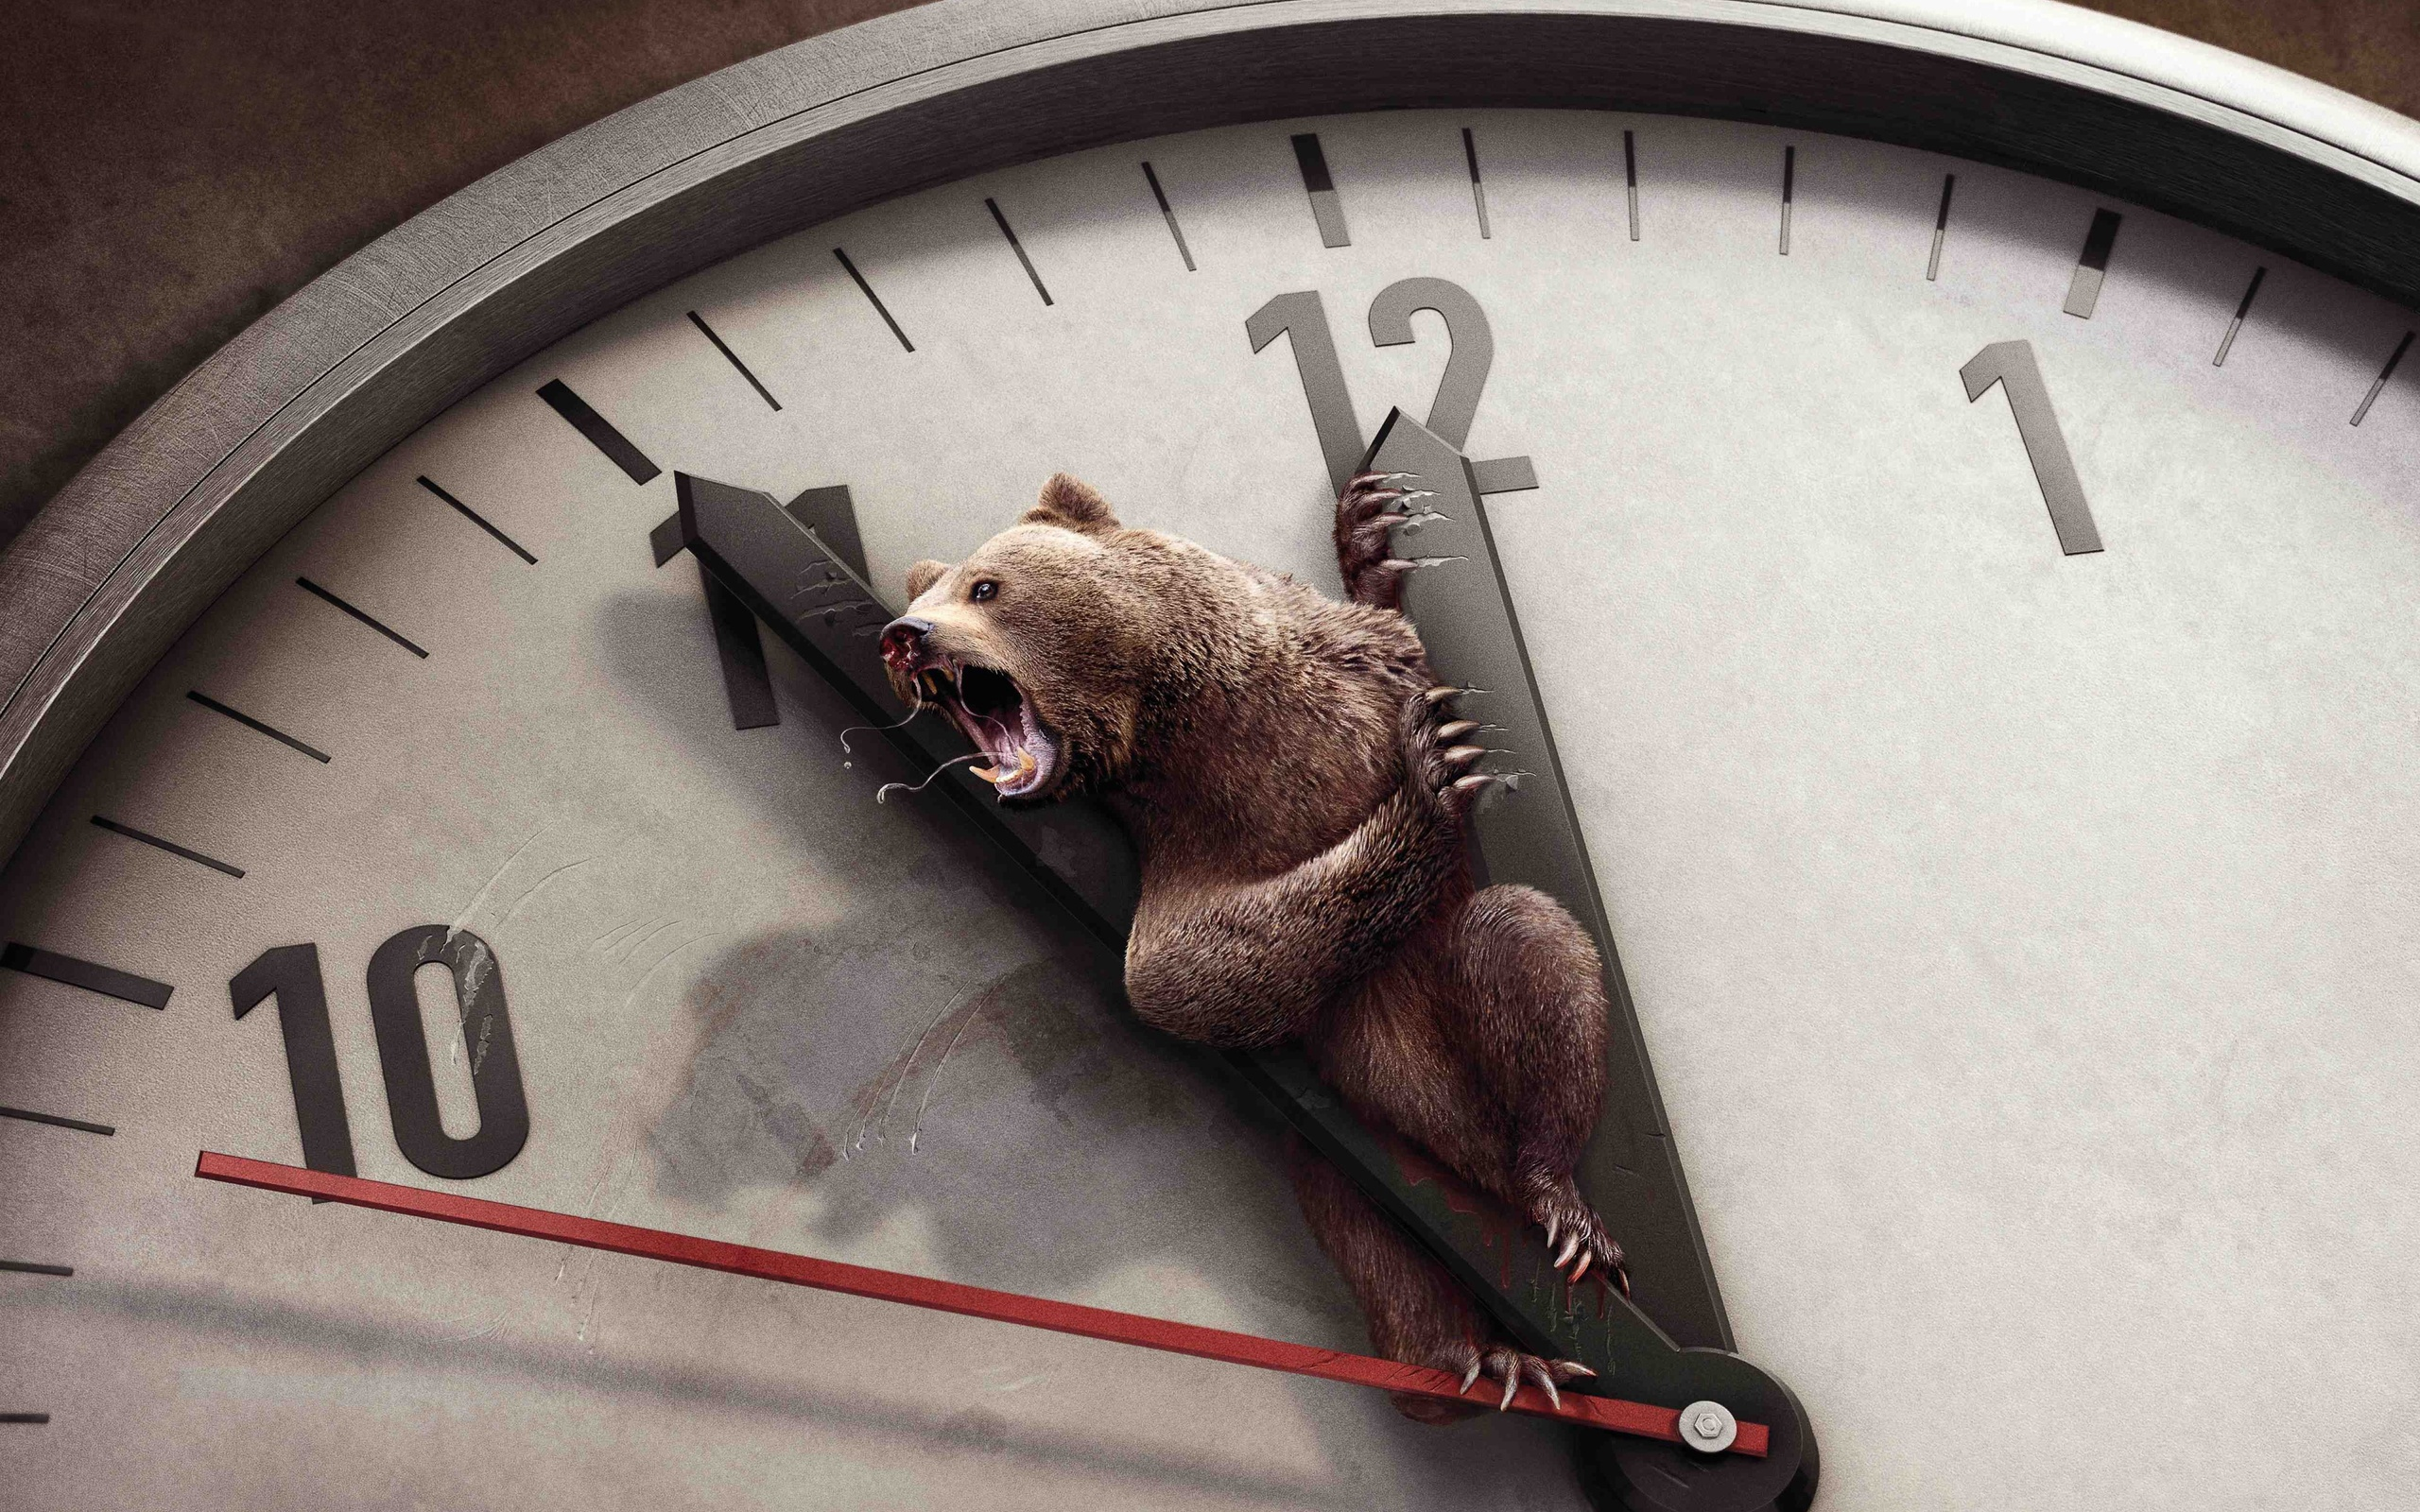 Creative picture of bear on the clock dial wallpaper - 2560x1600